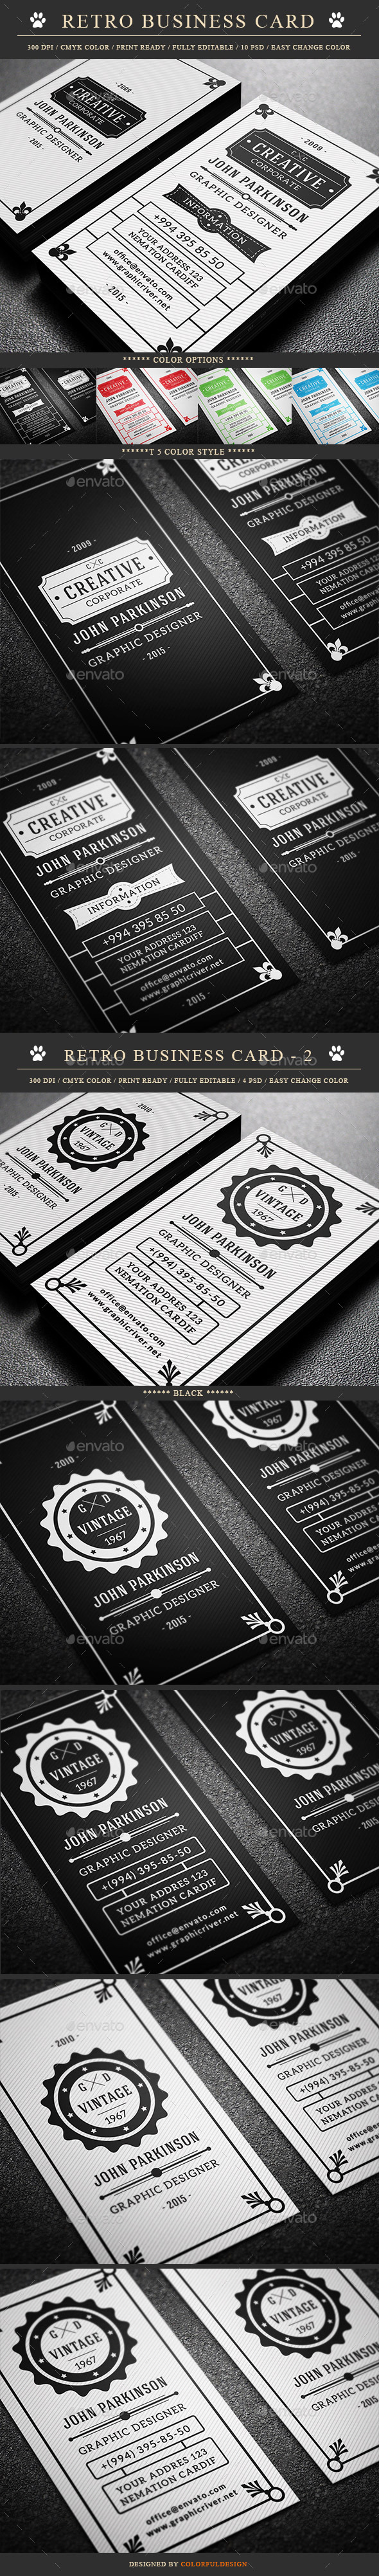 Retro Business Card Bundle